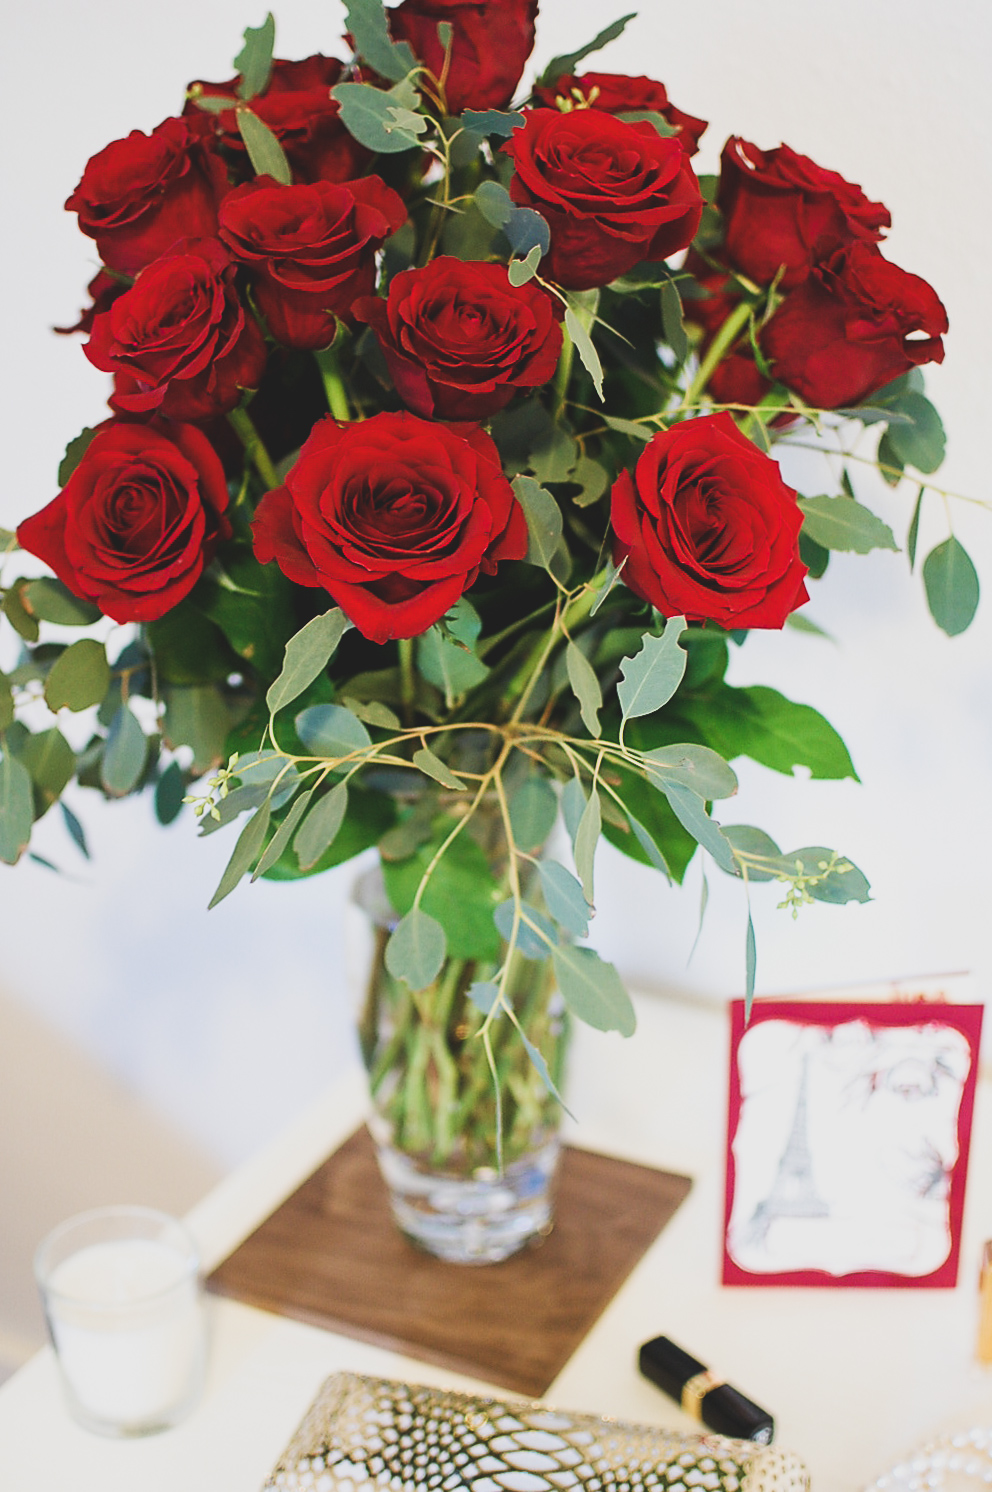 Roses Say I Love You On Valentine's Day